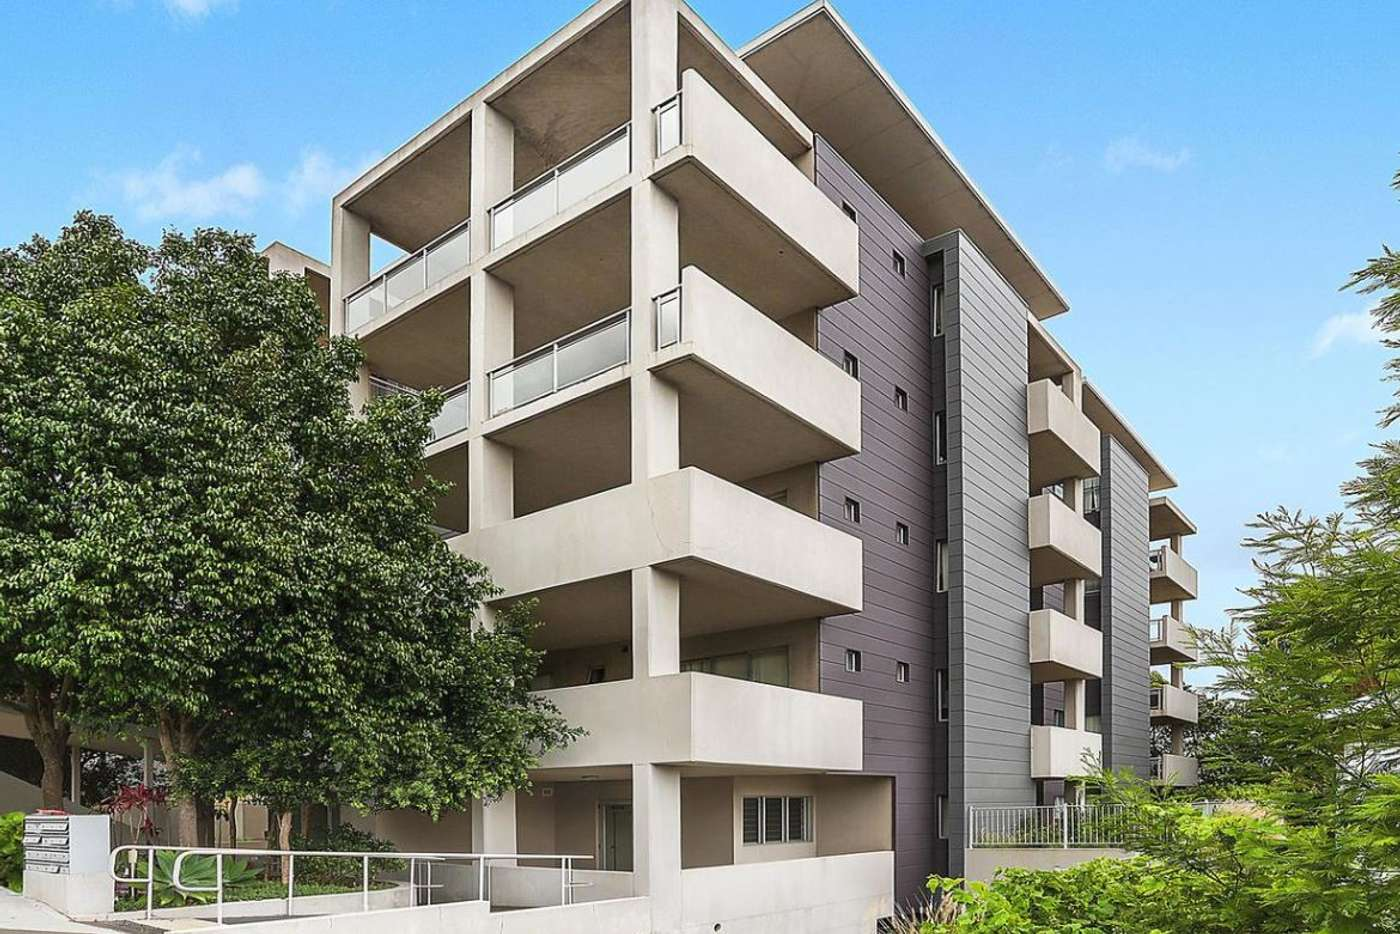 Main view of Homely unit listing, 6/12 Loftus Street, Wollongong NSW 2500